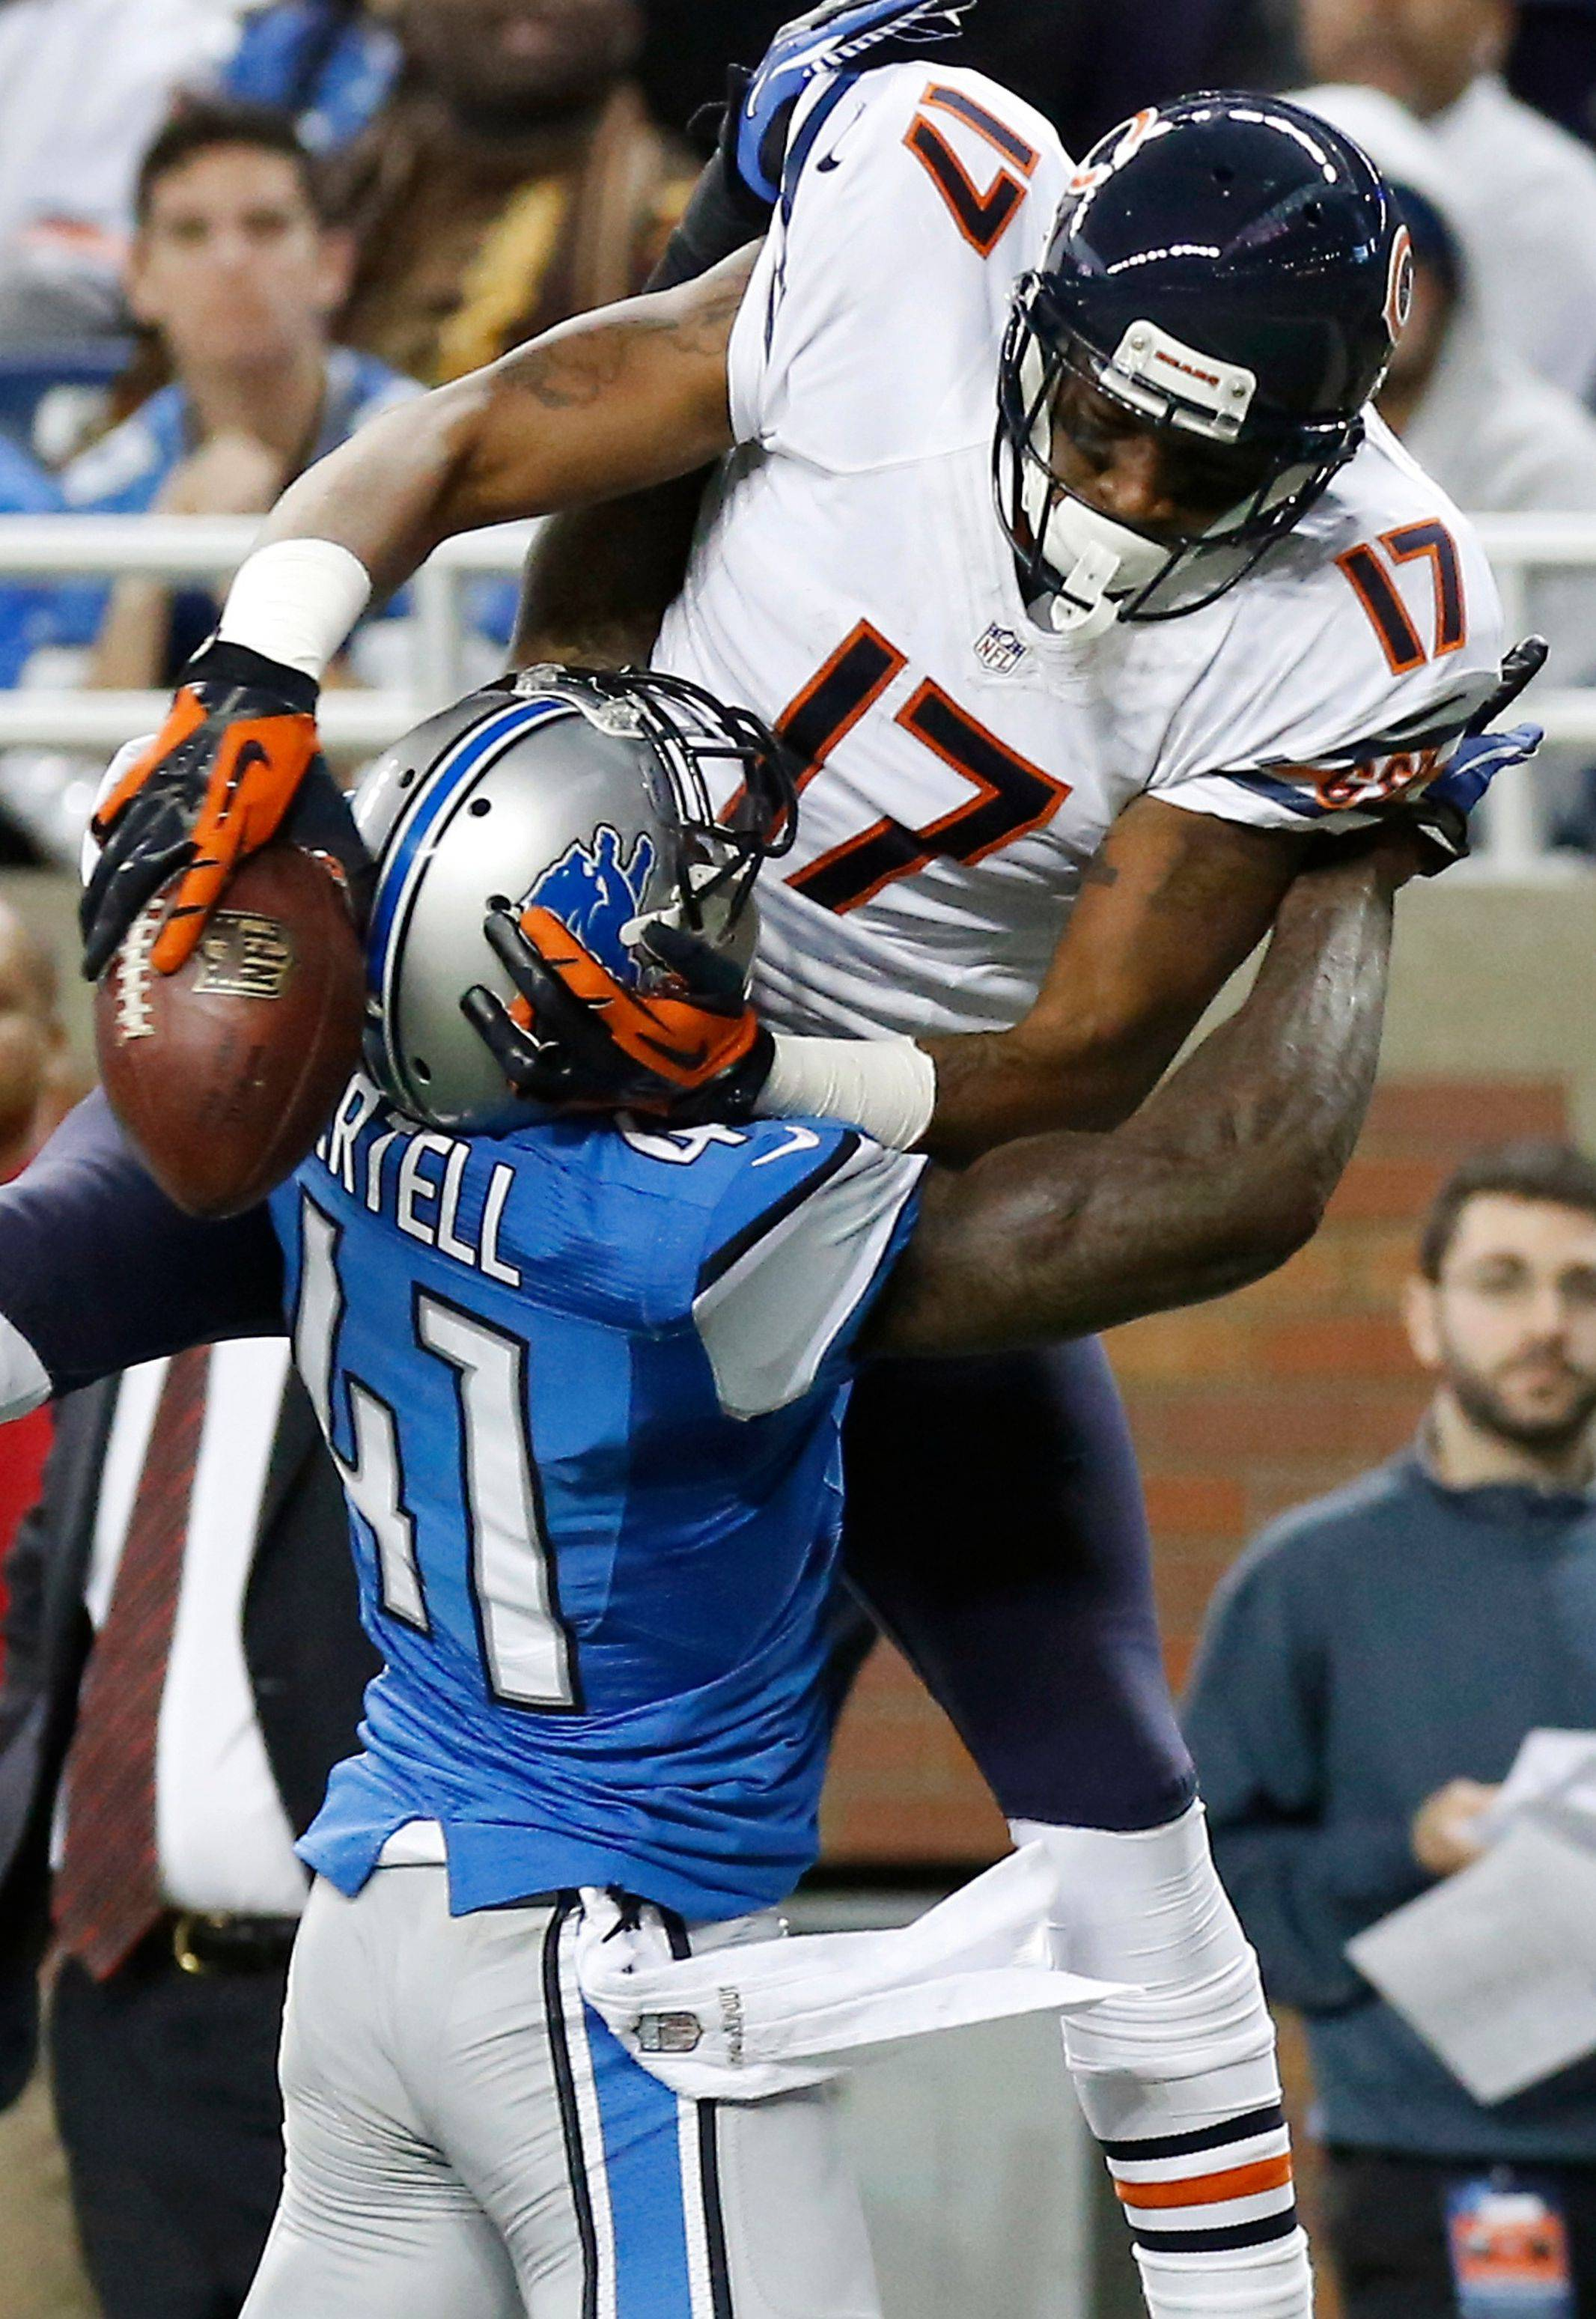 Alshon Jeffery had 4 catches for 76 yards, including a 55-yarder on the Bears' first play from scrimmage. Jeffery